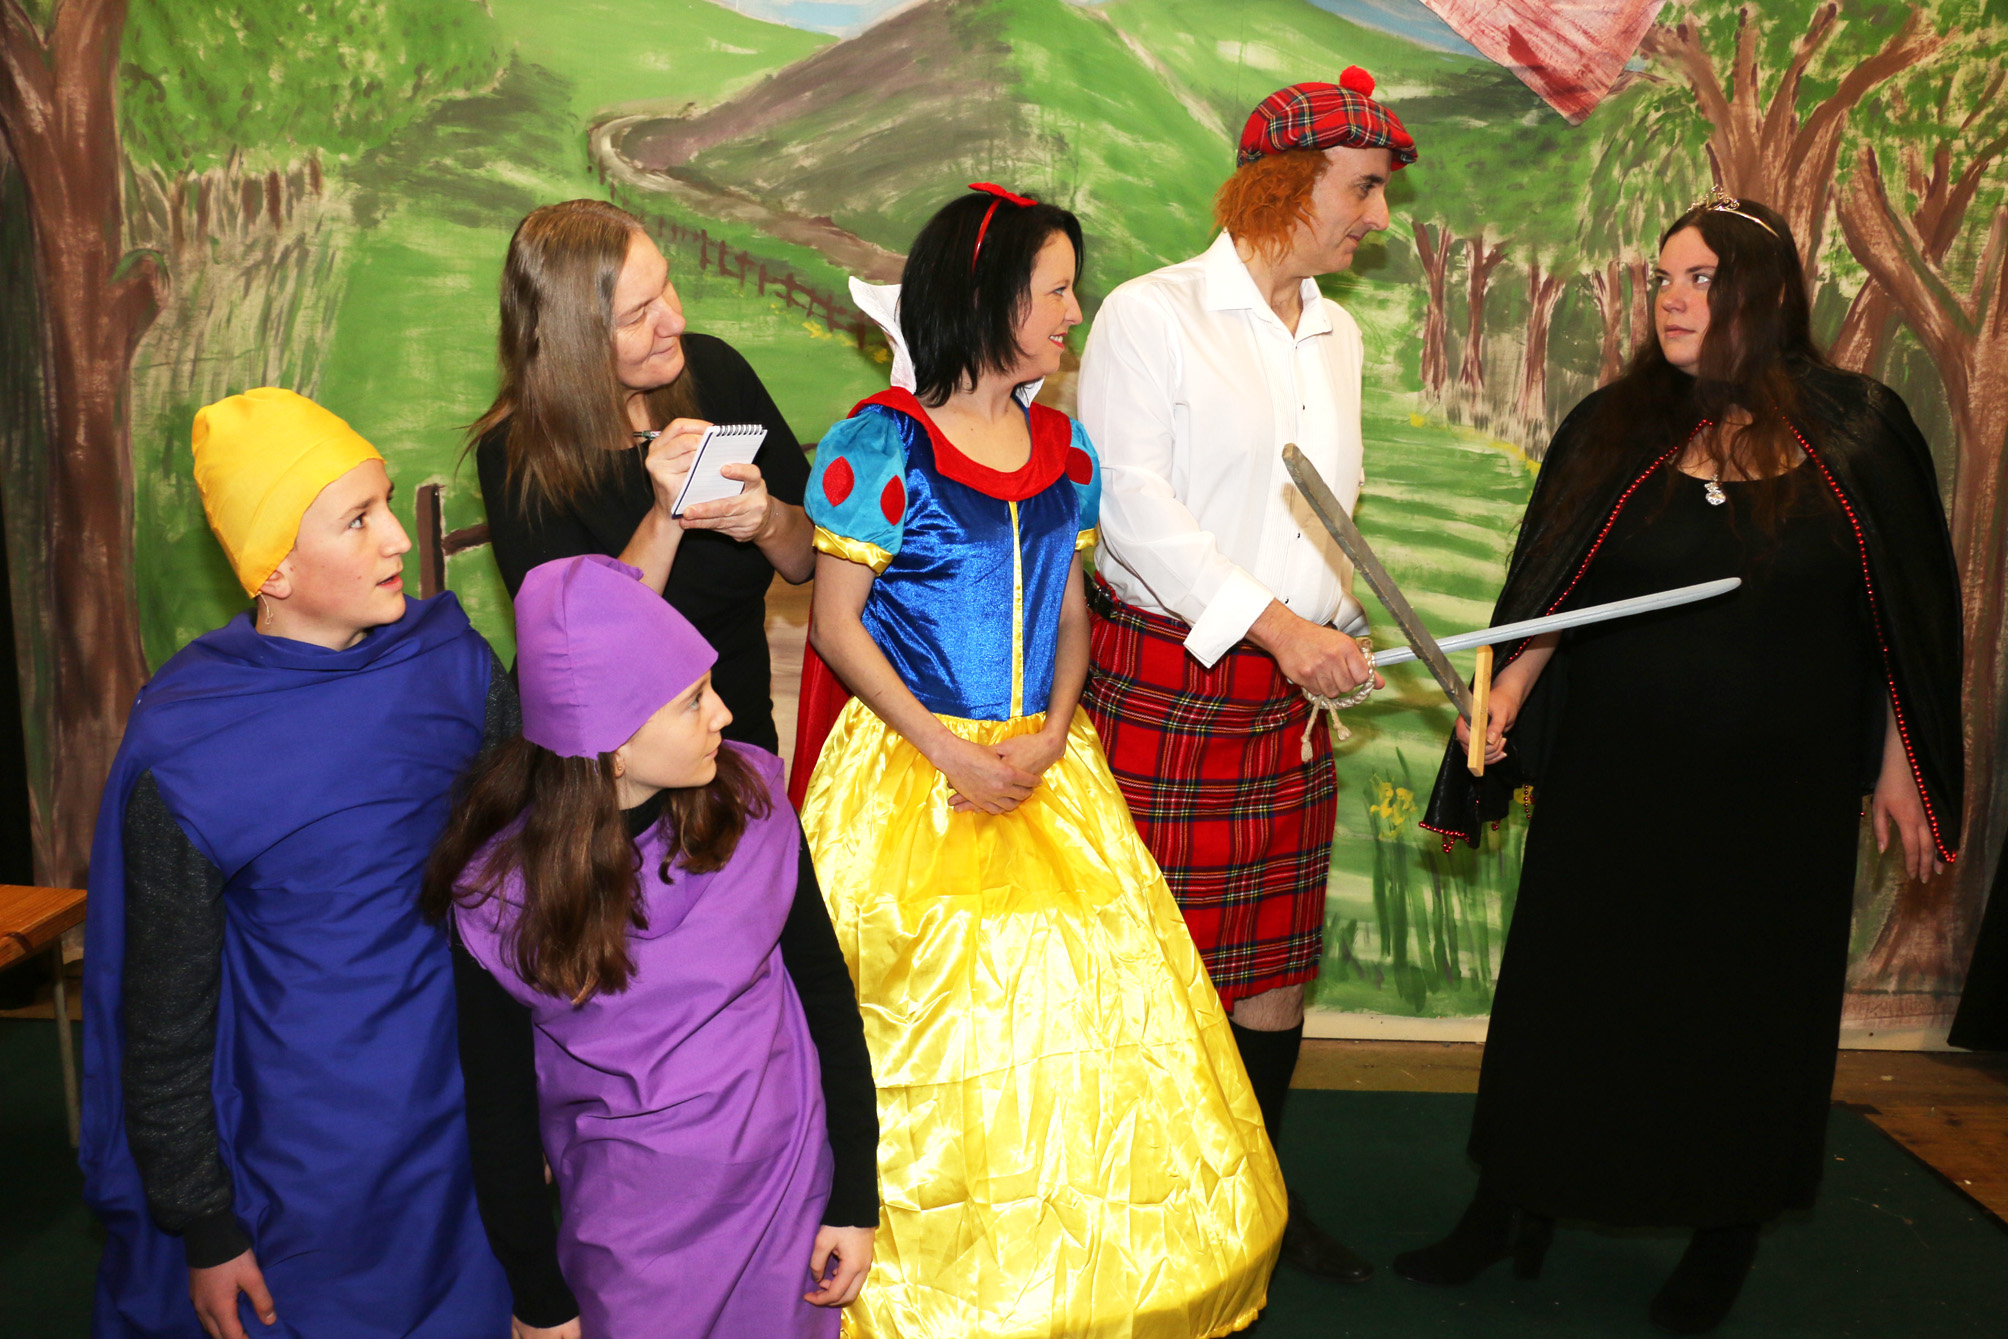 L-r - Ben Jackson, aged 13, Olivia Jackson, aged 11, Vi Wood as the reporter, Shelley Plant as Snow White, Mike Brownhill as the Huntsman and Laura Liptrot as the Evil Queen.